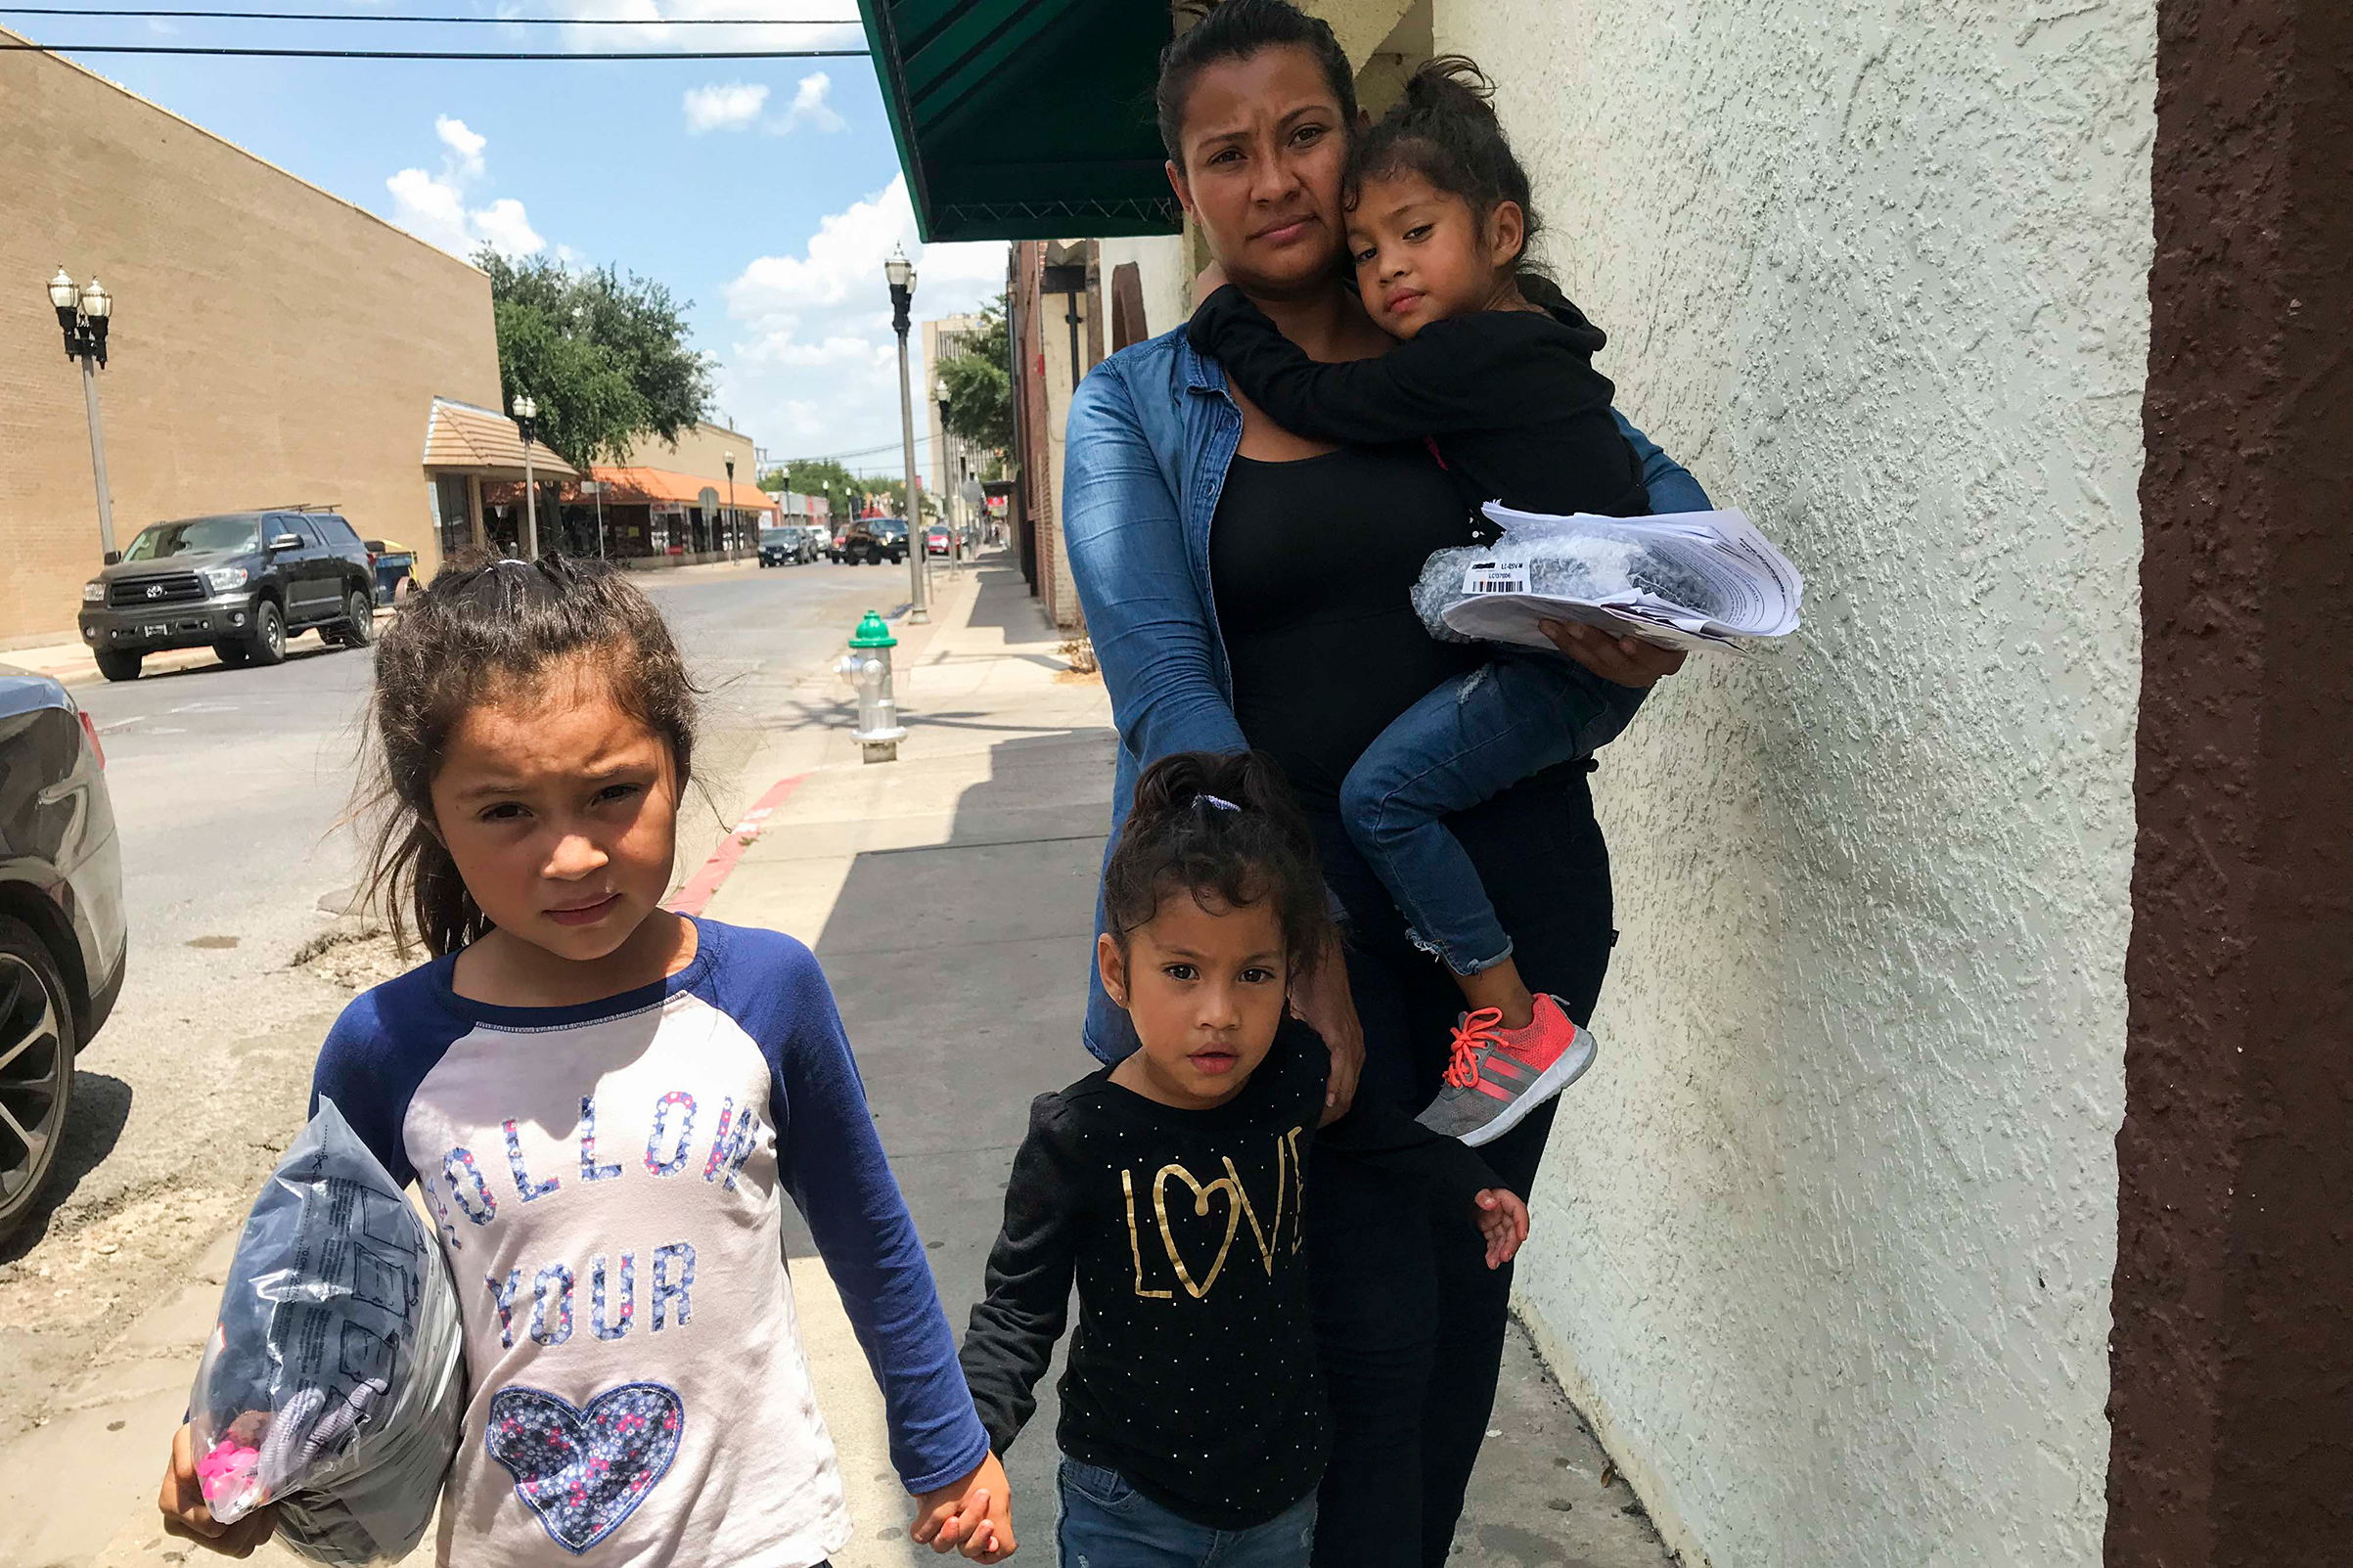 Silvia Guidel and her daughters Seily, 7, and twins Nahsliy Nicole and Nahsliy Dariana, 4, from Guatemala, make their way from the McAllen bus station to the Catholic Charities Humanitarian Respite Center on July 31, 2018.